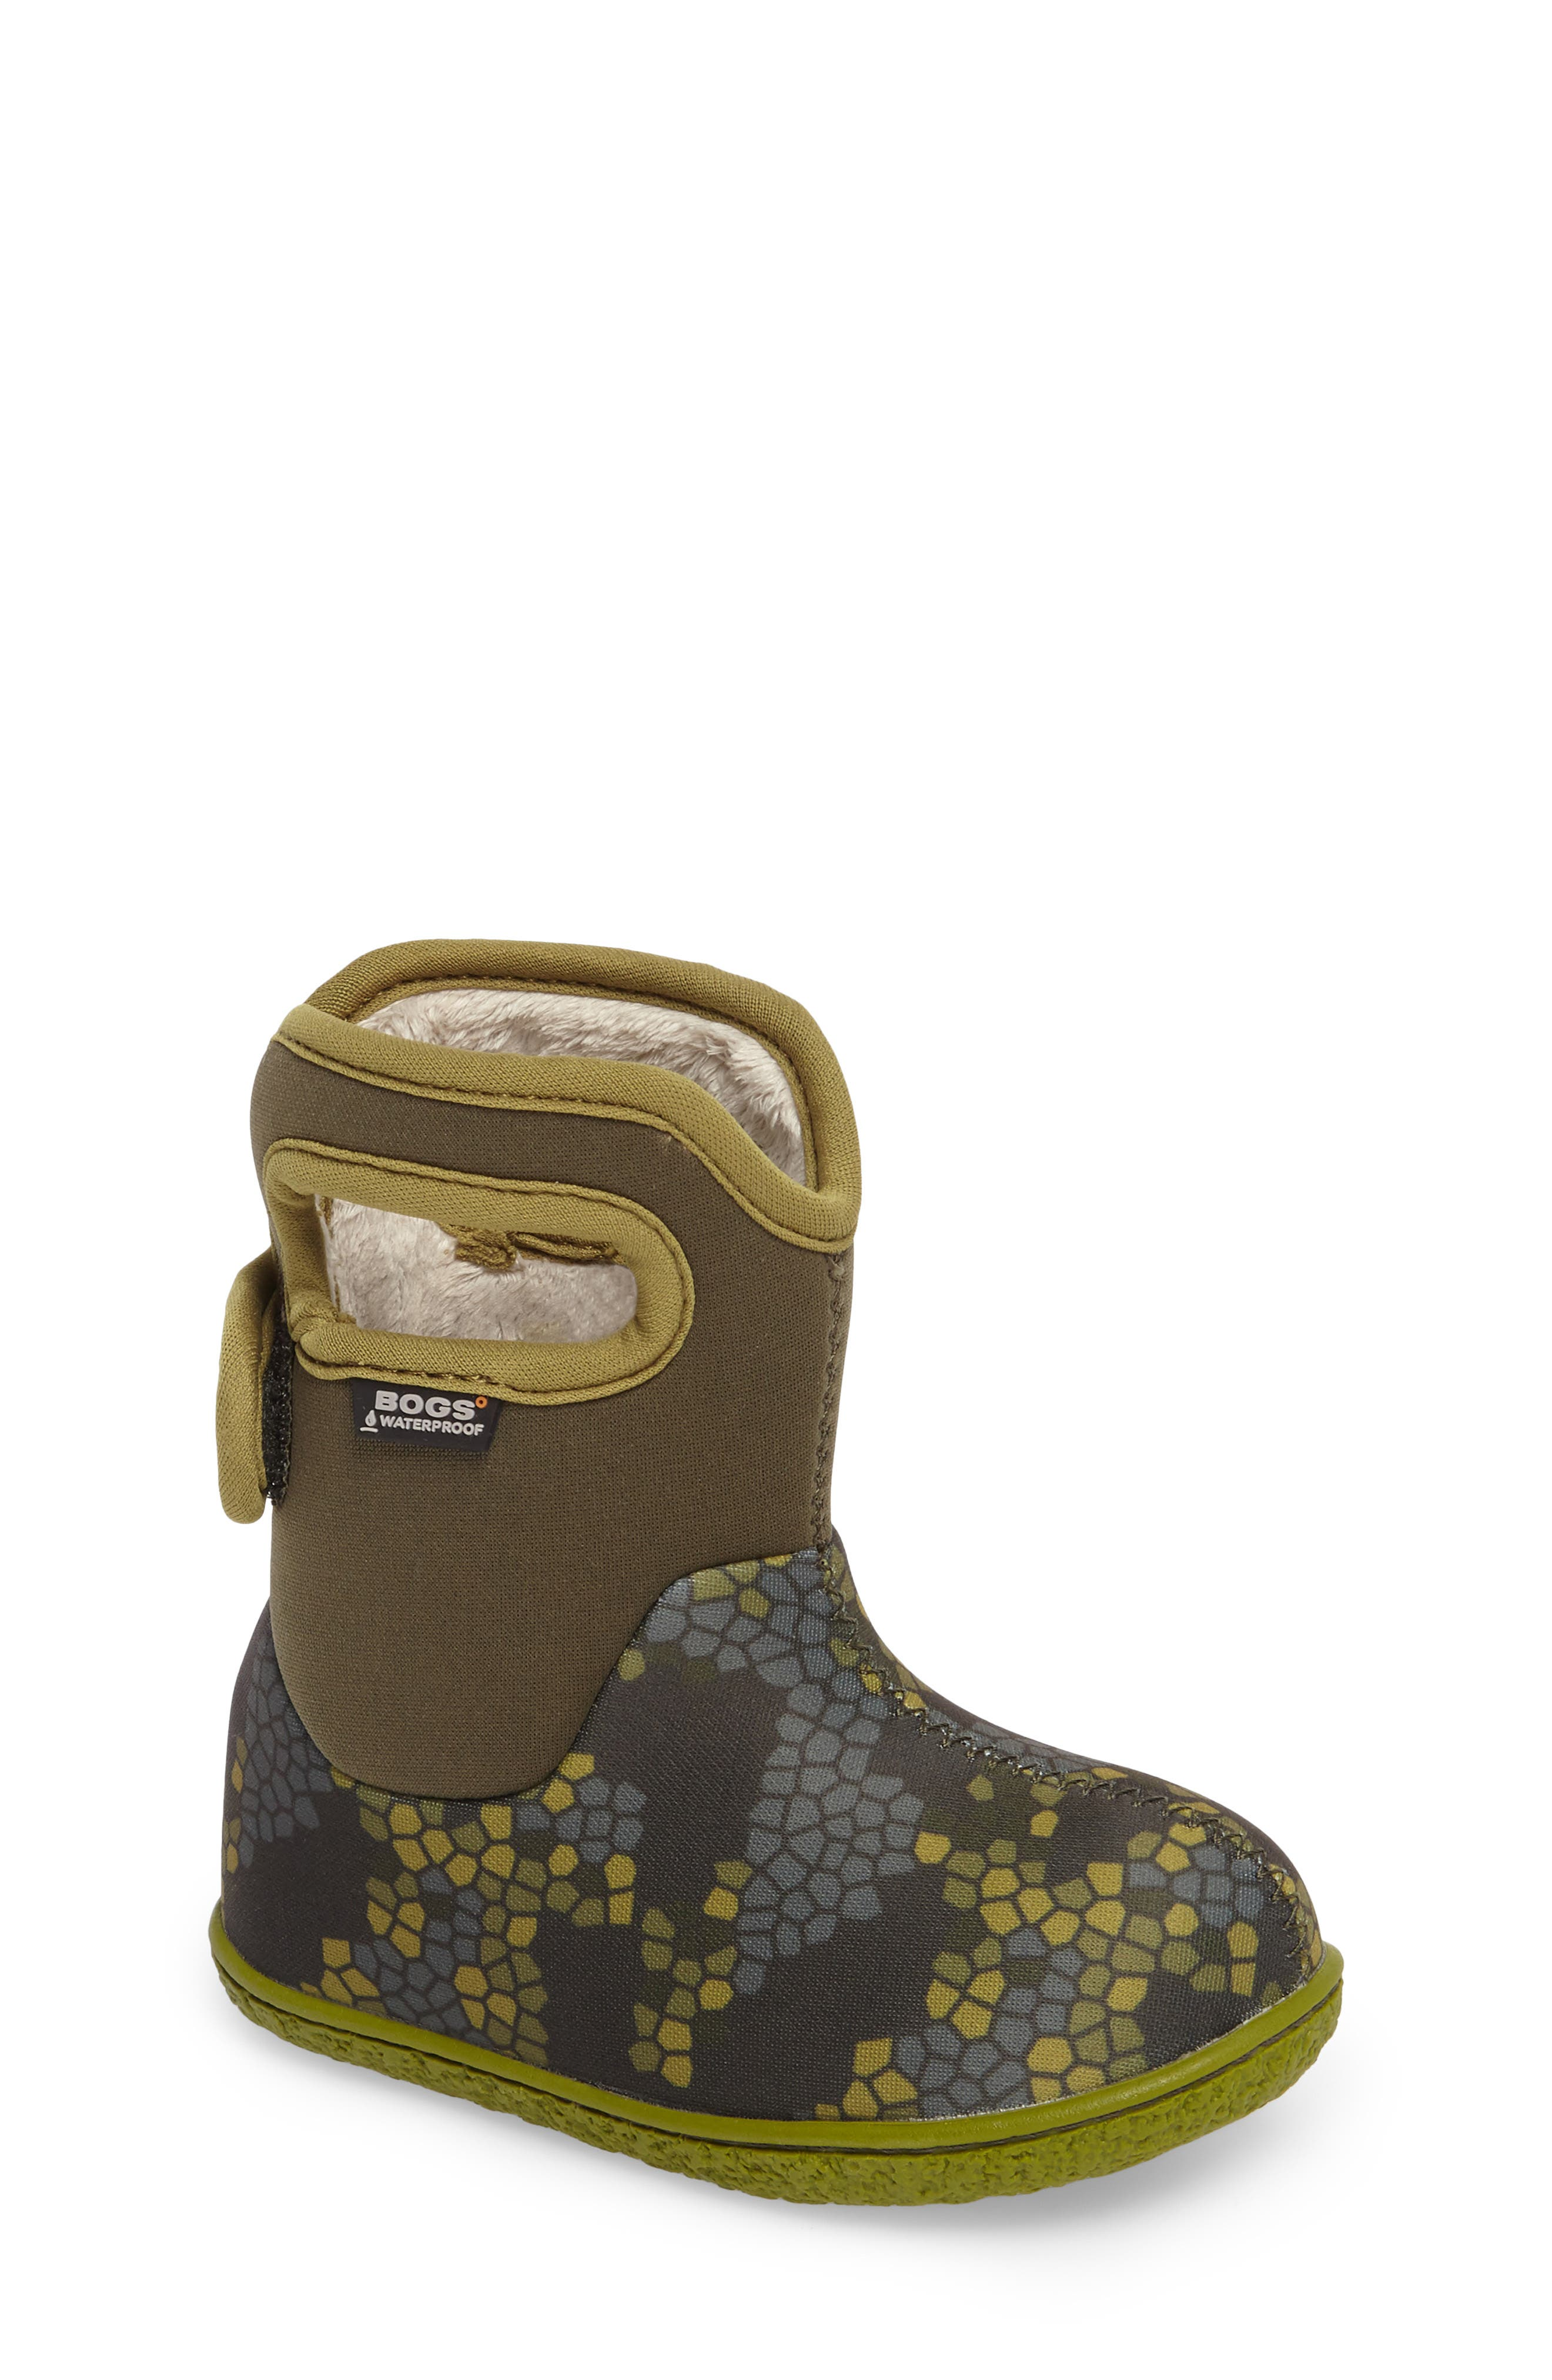 Main Image - Bogs Baby Bogs Classic Axel Washable Insulated Waterproof Boot (Baby, Walker & Toddler)